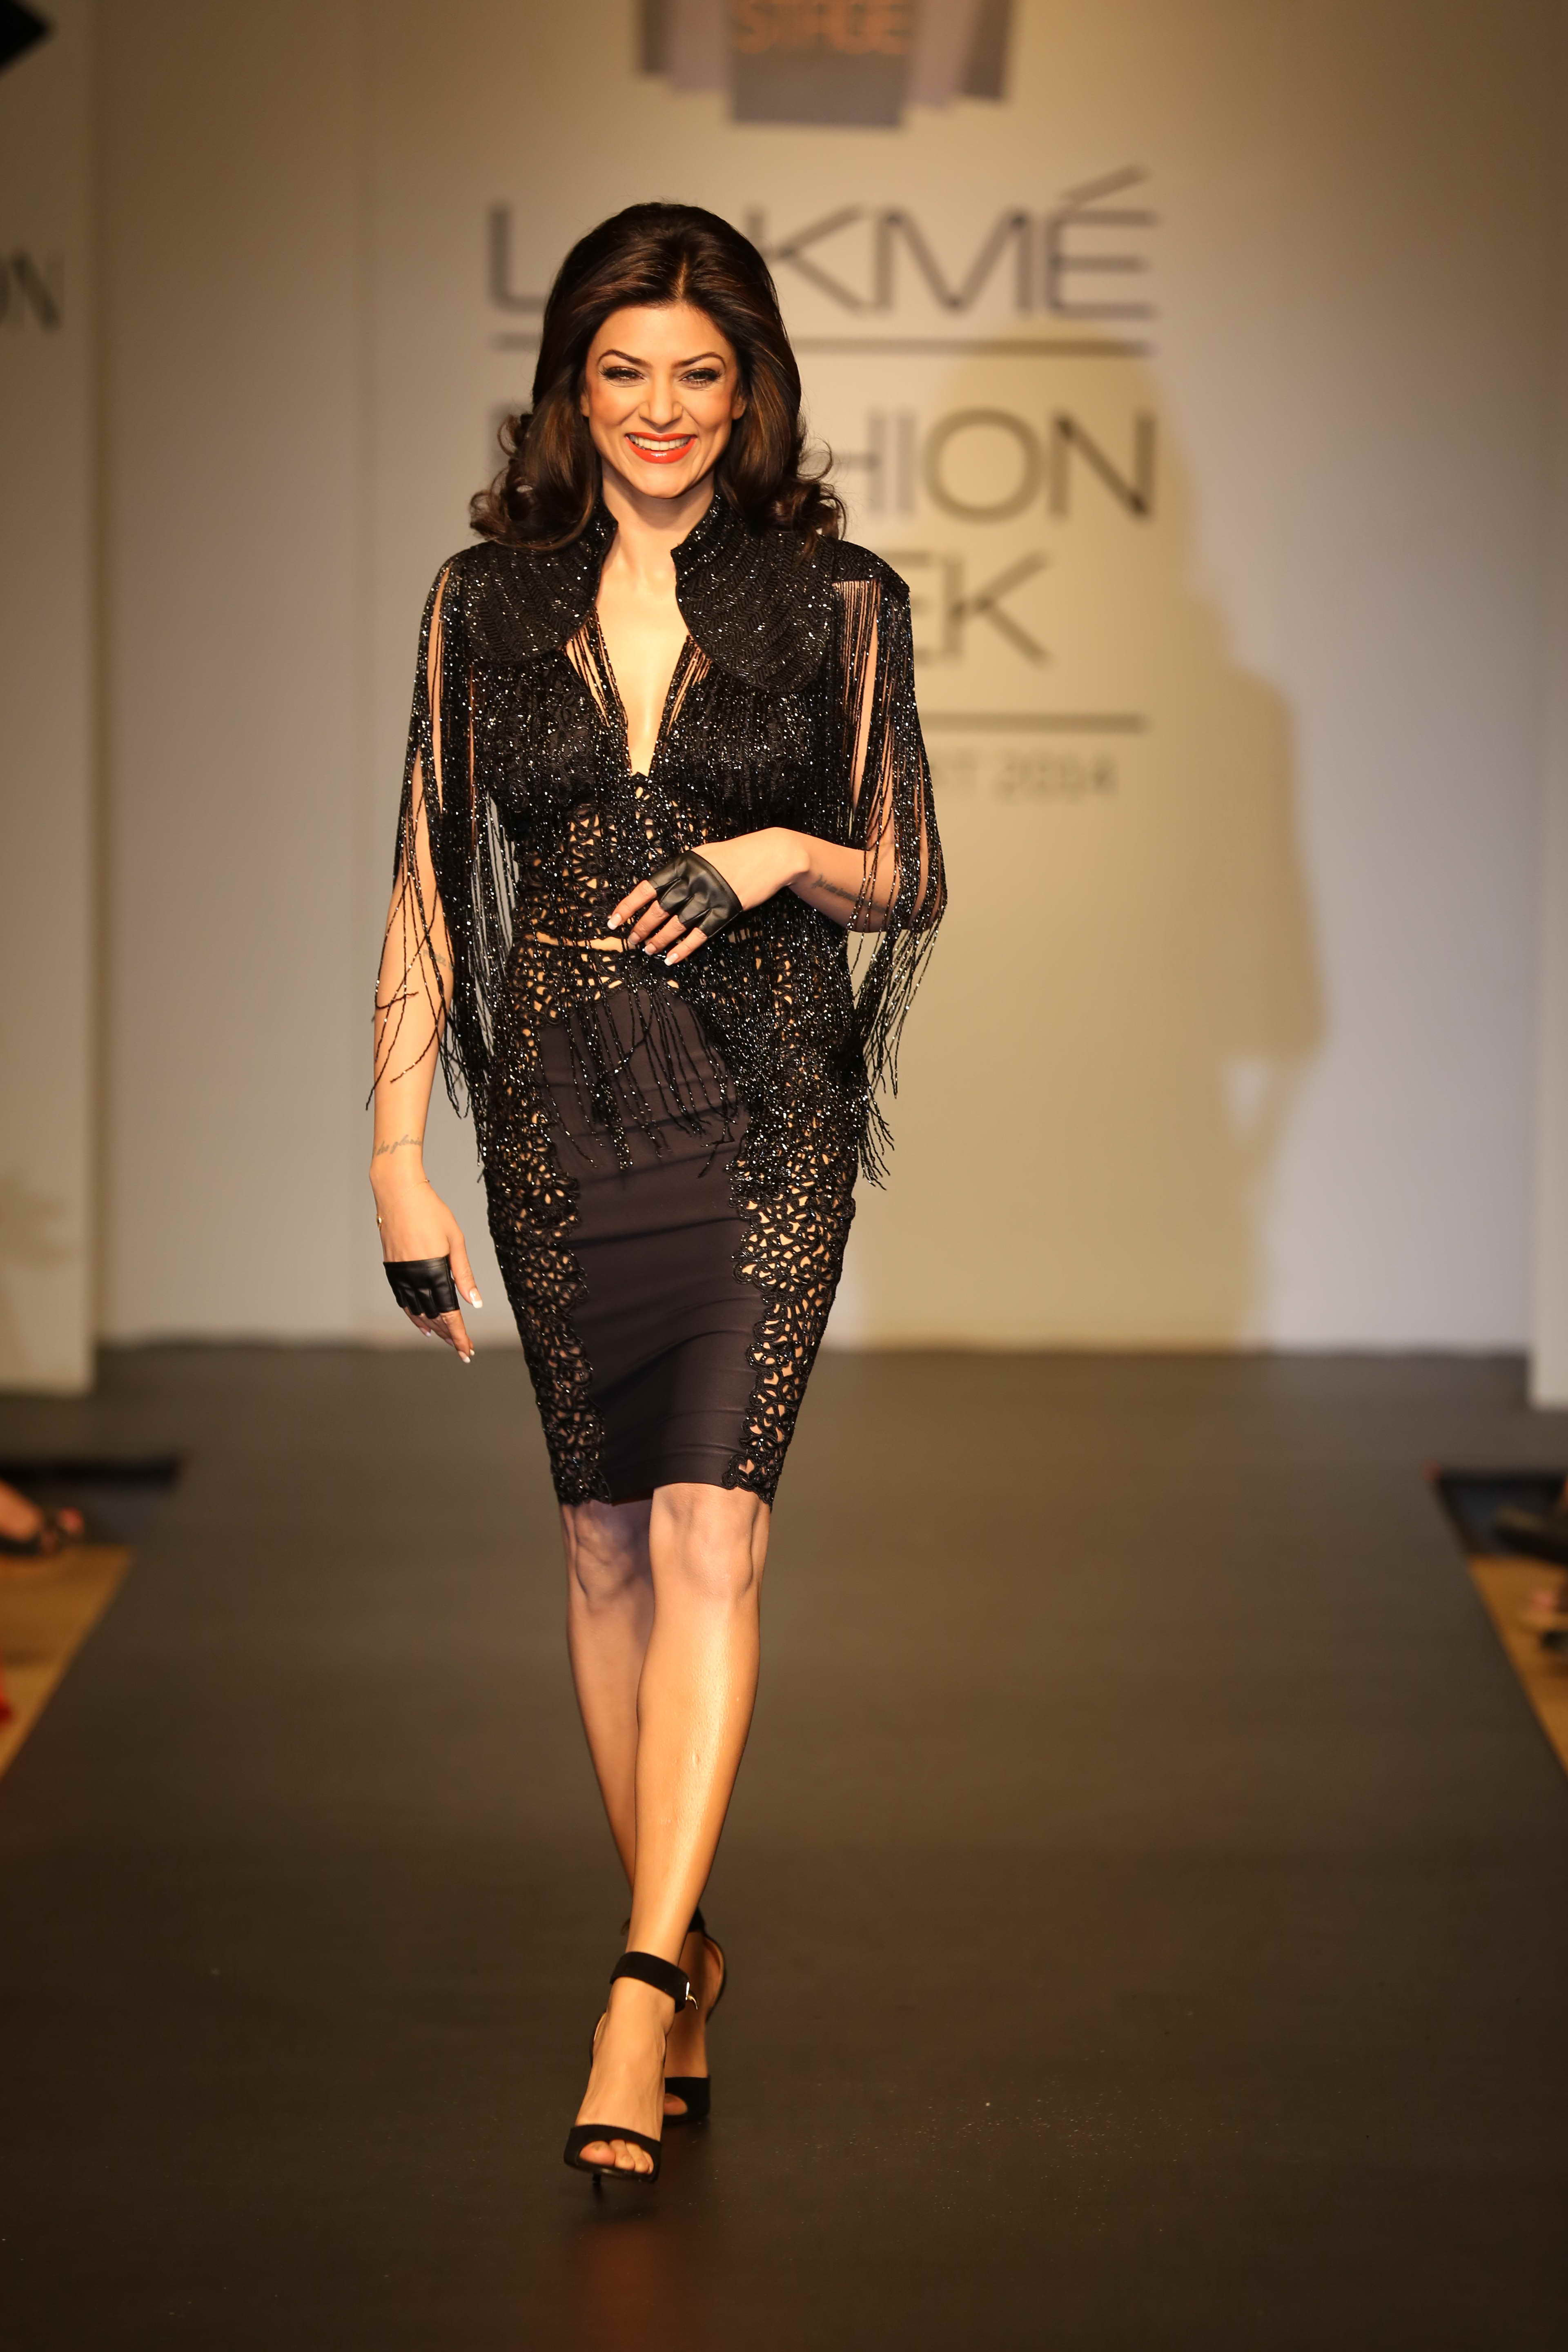 The showstopper was none other than Sushmita Sen, Miss Universe 1994 who stunned all in a 40's classy cabaret inspired skirt and bustier crafted in black lace and worn with a beaded cape.